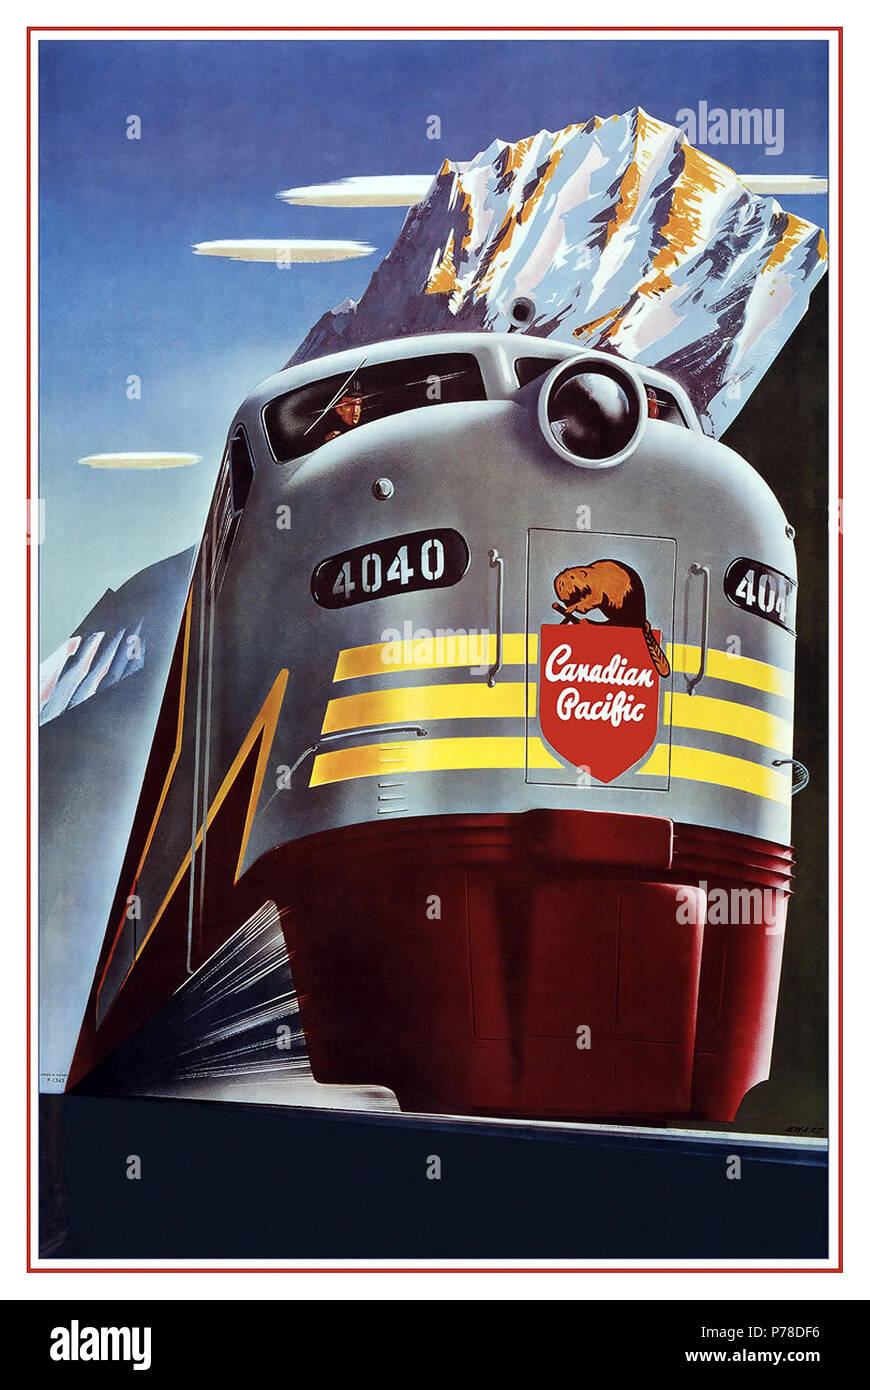 Canadian Pacific Poster High Resolution Stock Photography And Images Alamy